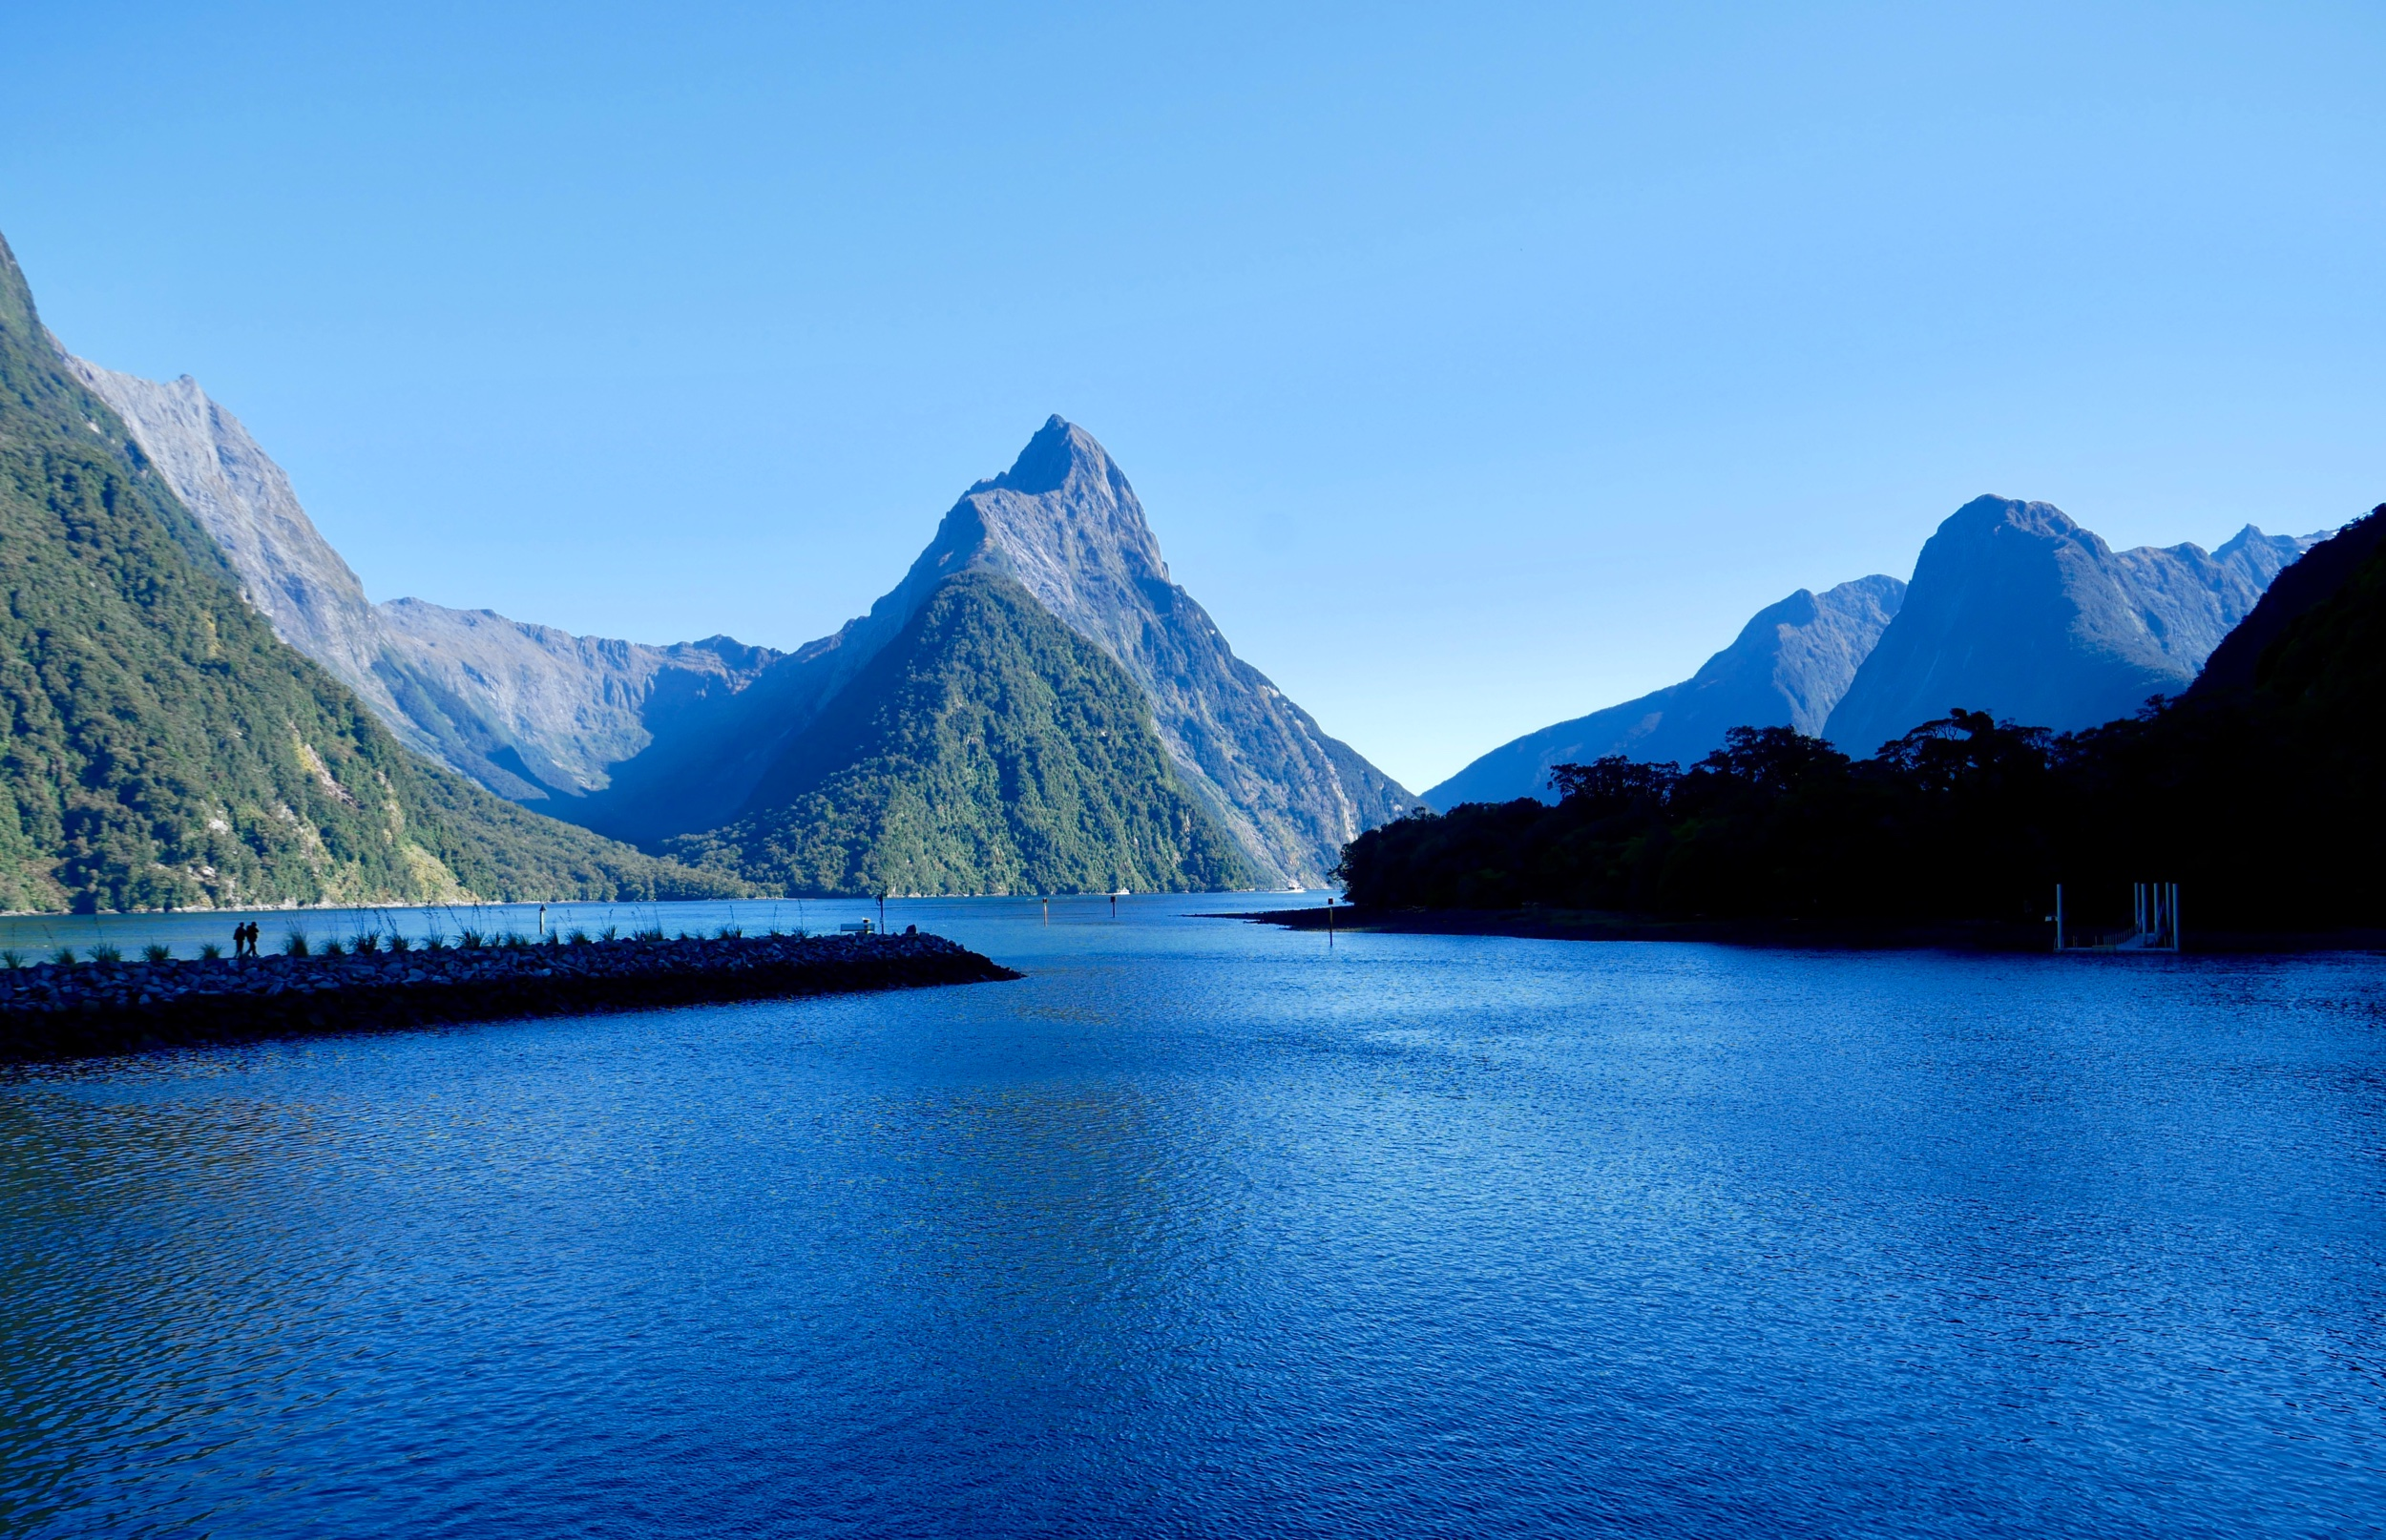 The beginning of Milford Sound from the top deck of a tour boat.